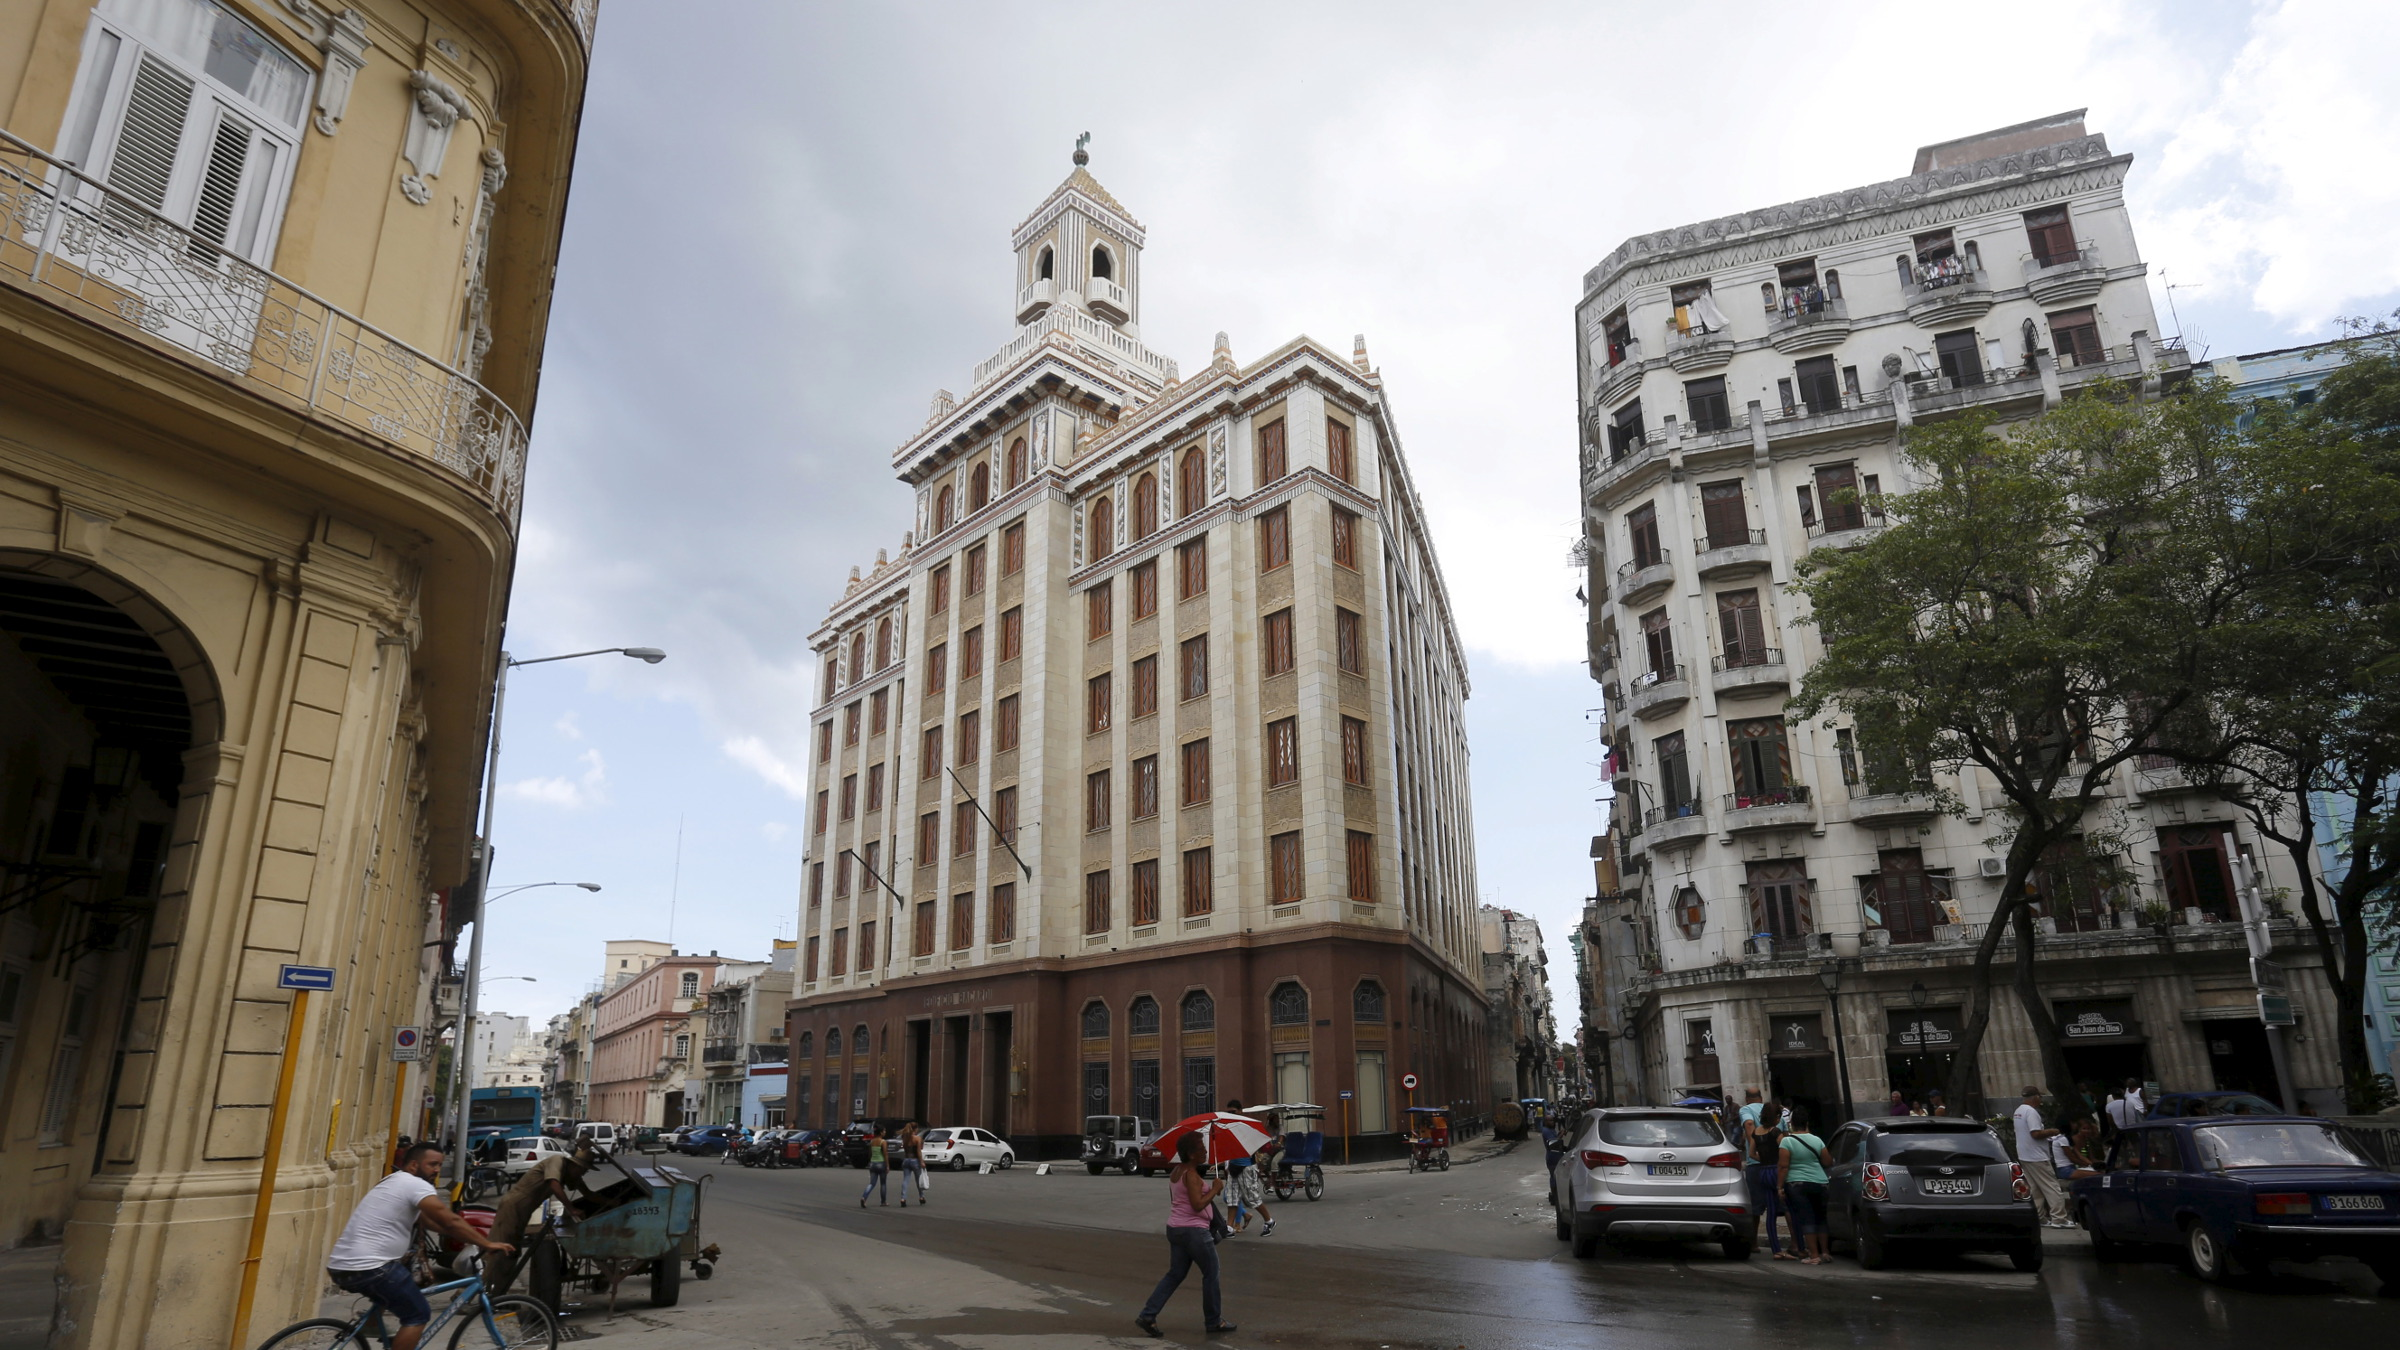 "The Bacardi building (C) formerly used as the headquarters of the company is seen in Havana September 18, 2015. The Obama administration announced wide-ranging new rules on Friday to further ease trade, travel and investment restrictions with Cuba, the latest effort to chip away at the long-standing U.S. economic embargo amid a thaw between the former Cold War foes. Bacardi, the largest privately held spirits maker in the world, was among the most successful companies in Cuba before its Cuban assets were seized by the government and its founders exiled in the 1960s. The company said on Friday it was ""way too early"" to talk about any possible return to the island. ""We will need to wait and see what the impacts are,"" Bacardi said in a statement."